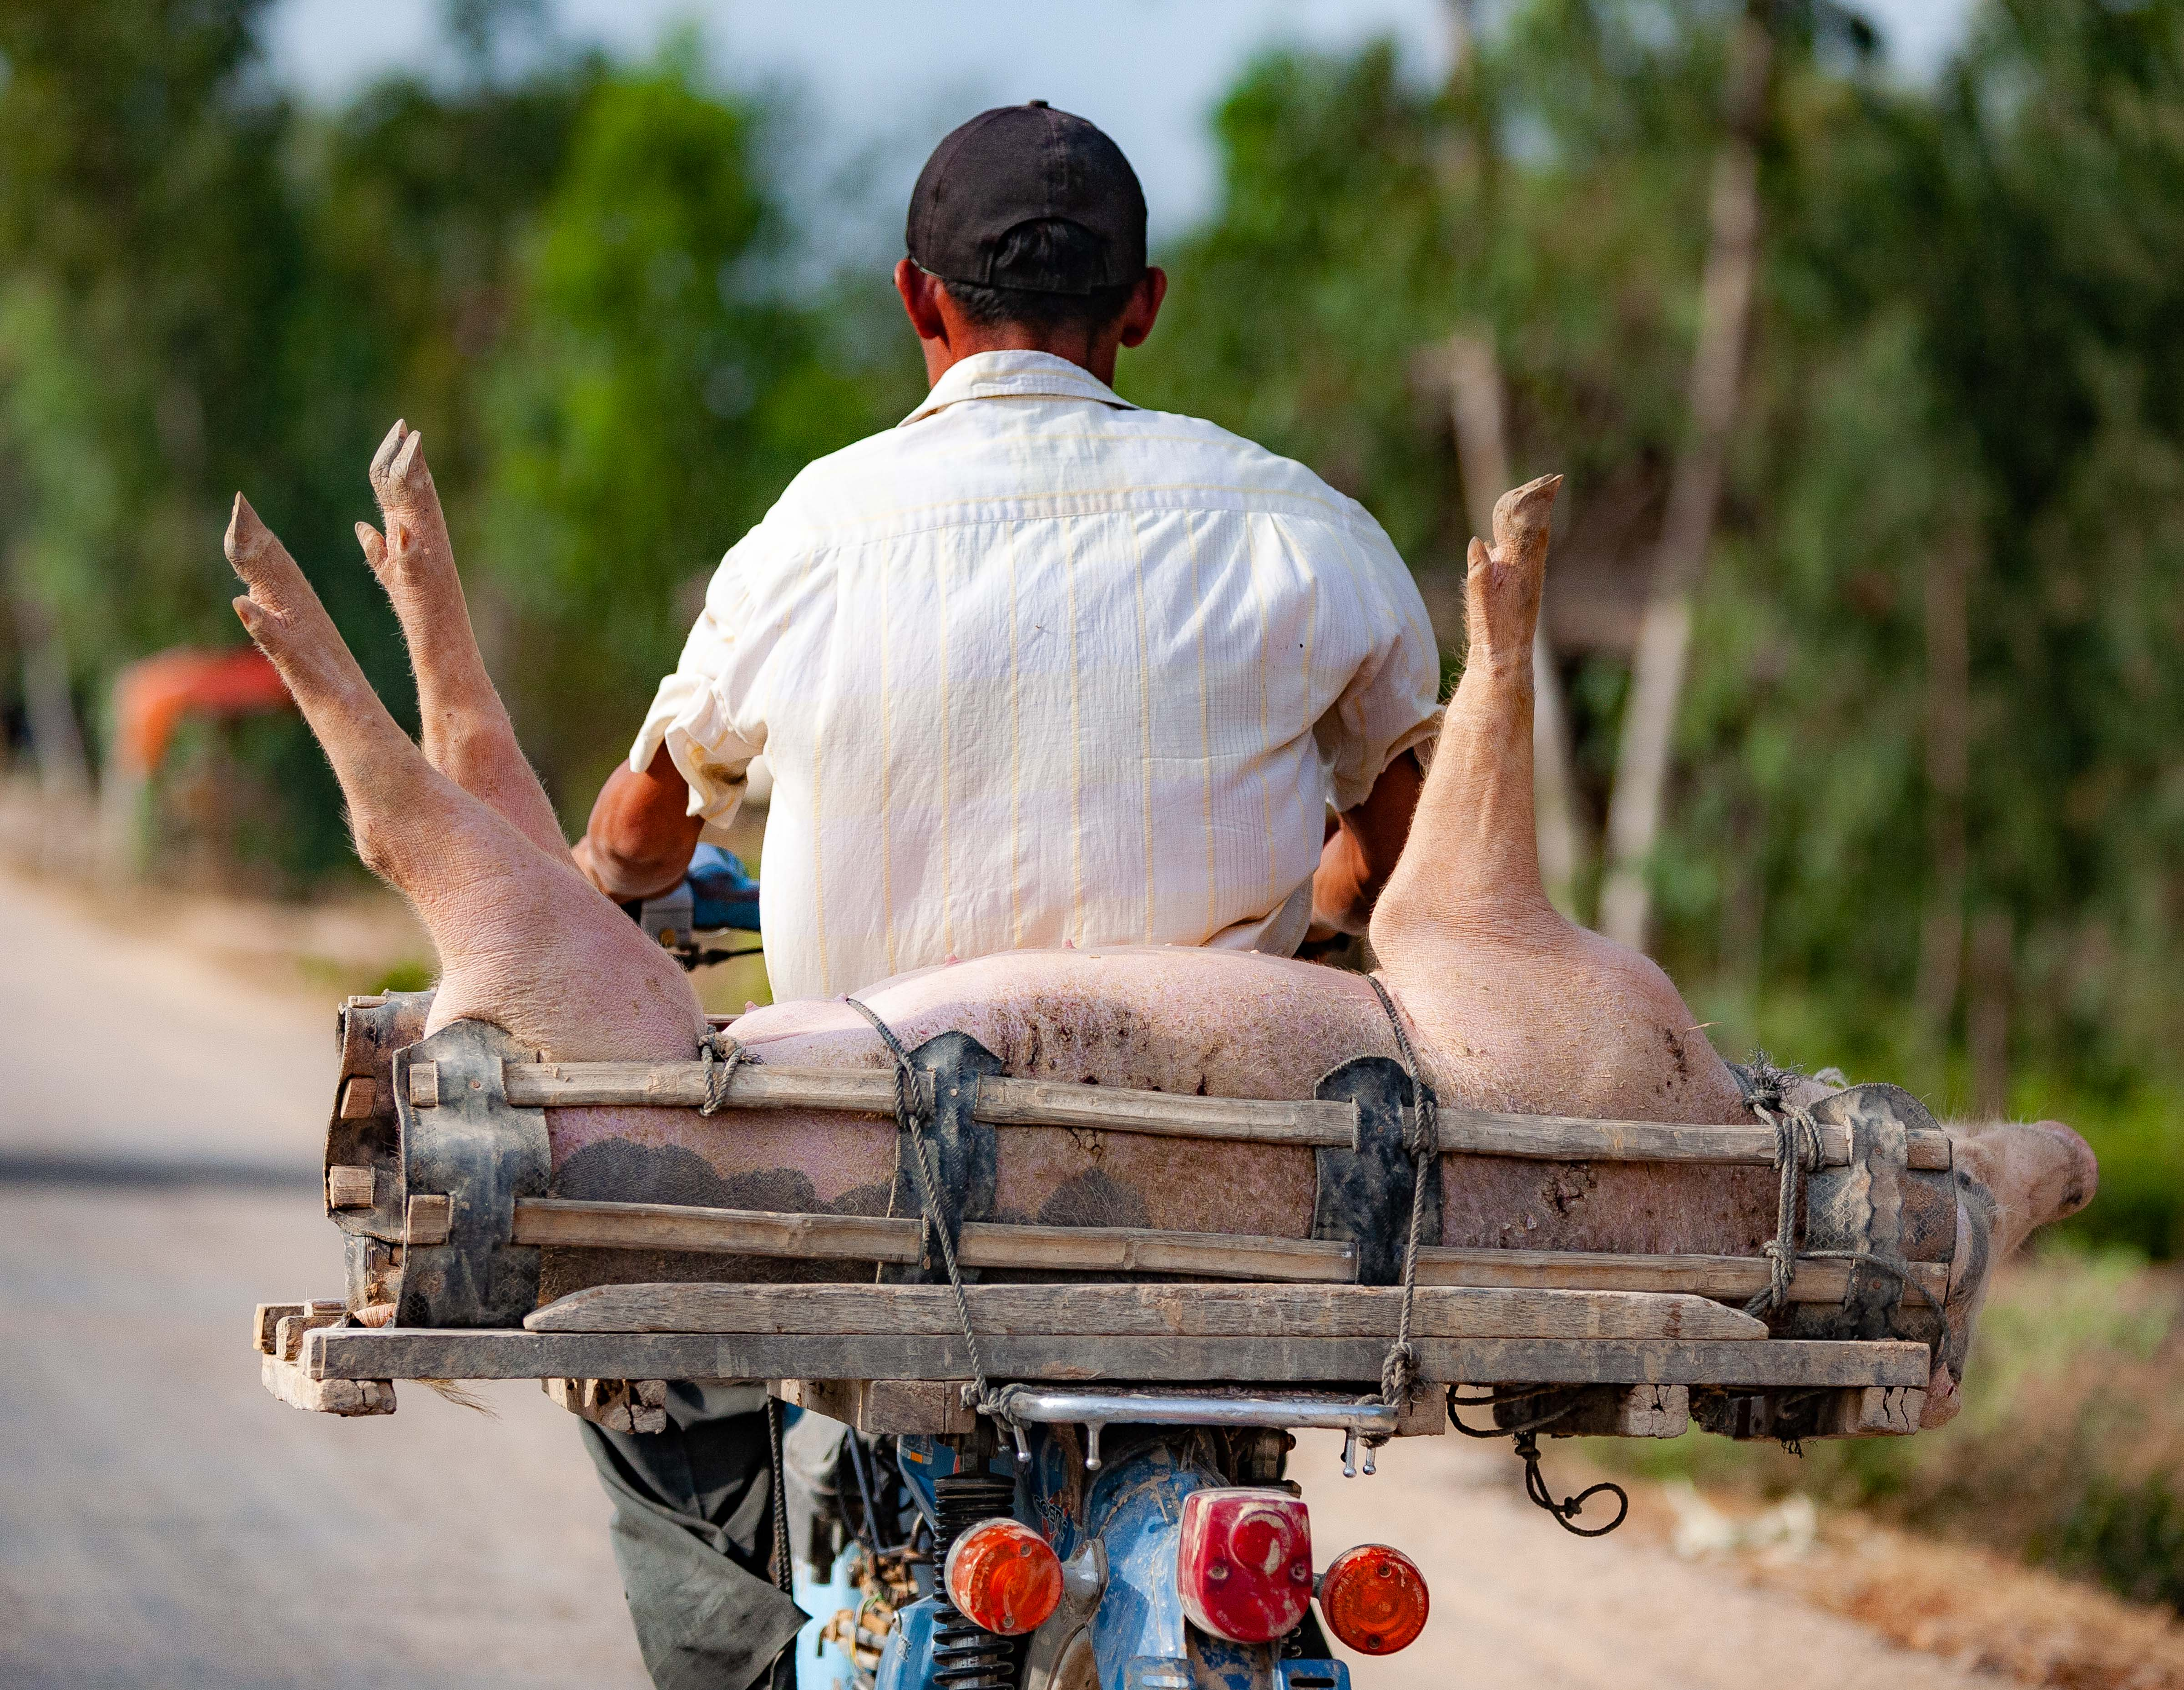 Cambodia, Prey Veaeng Prov, No Way To Treat A Pig, 2010, IMG 5260